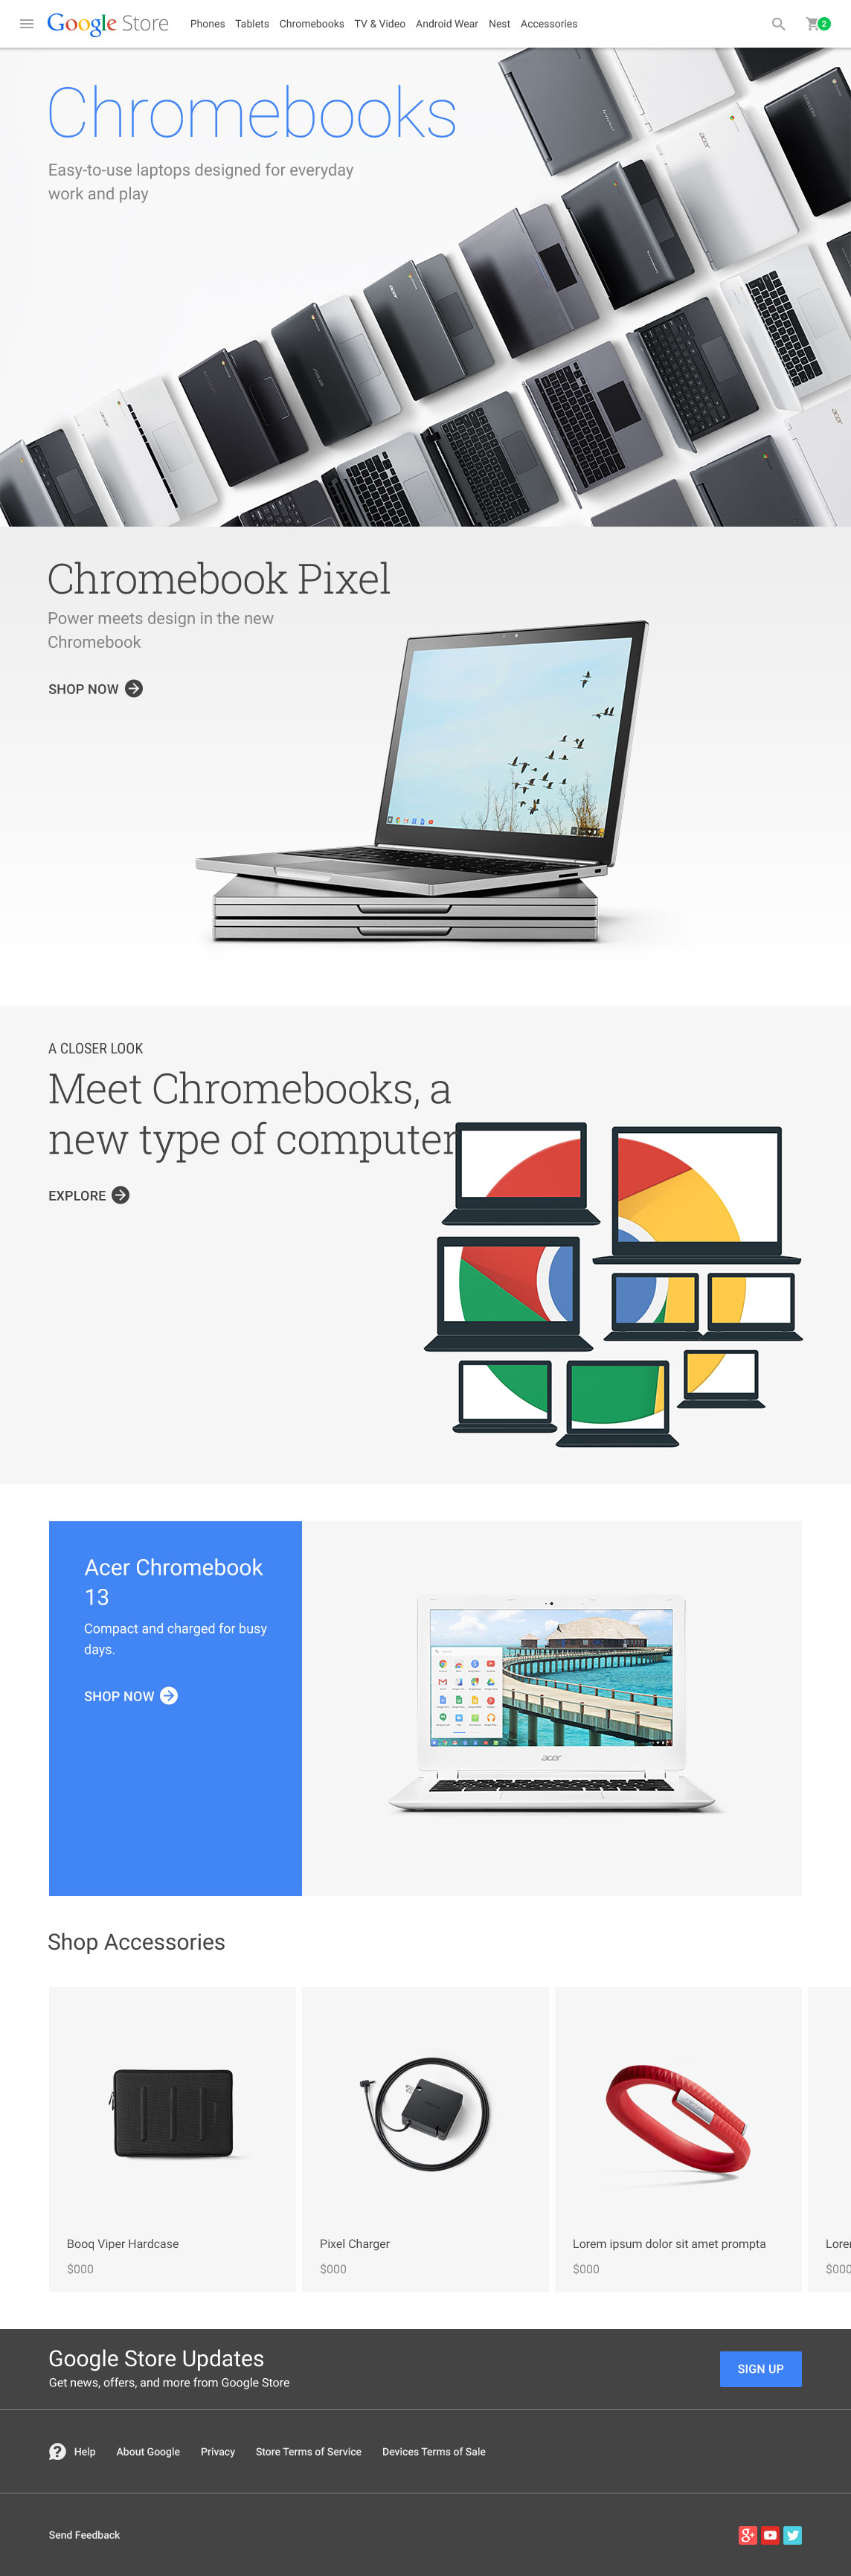 Chromebook Category Page